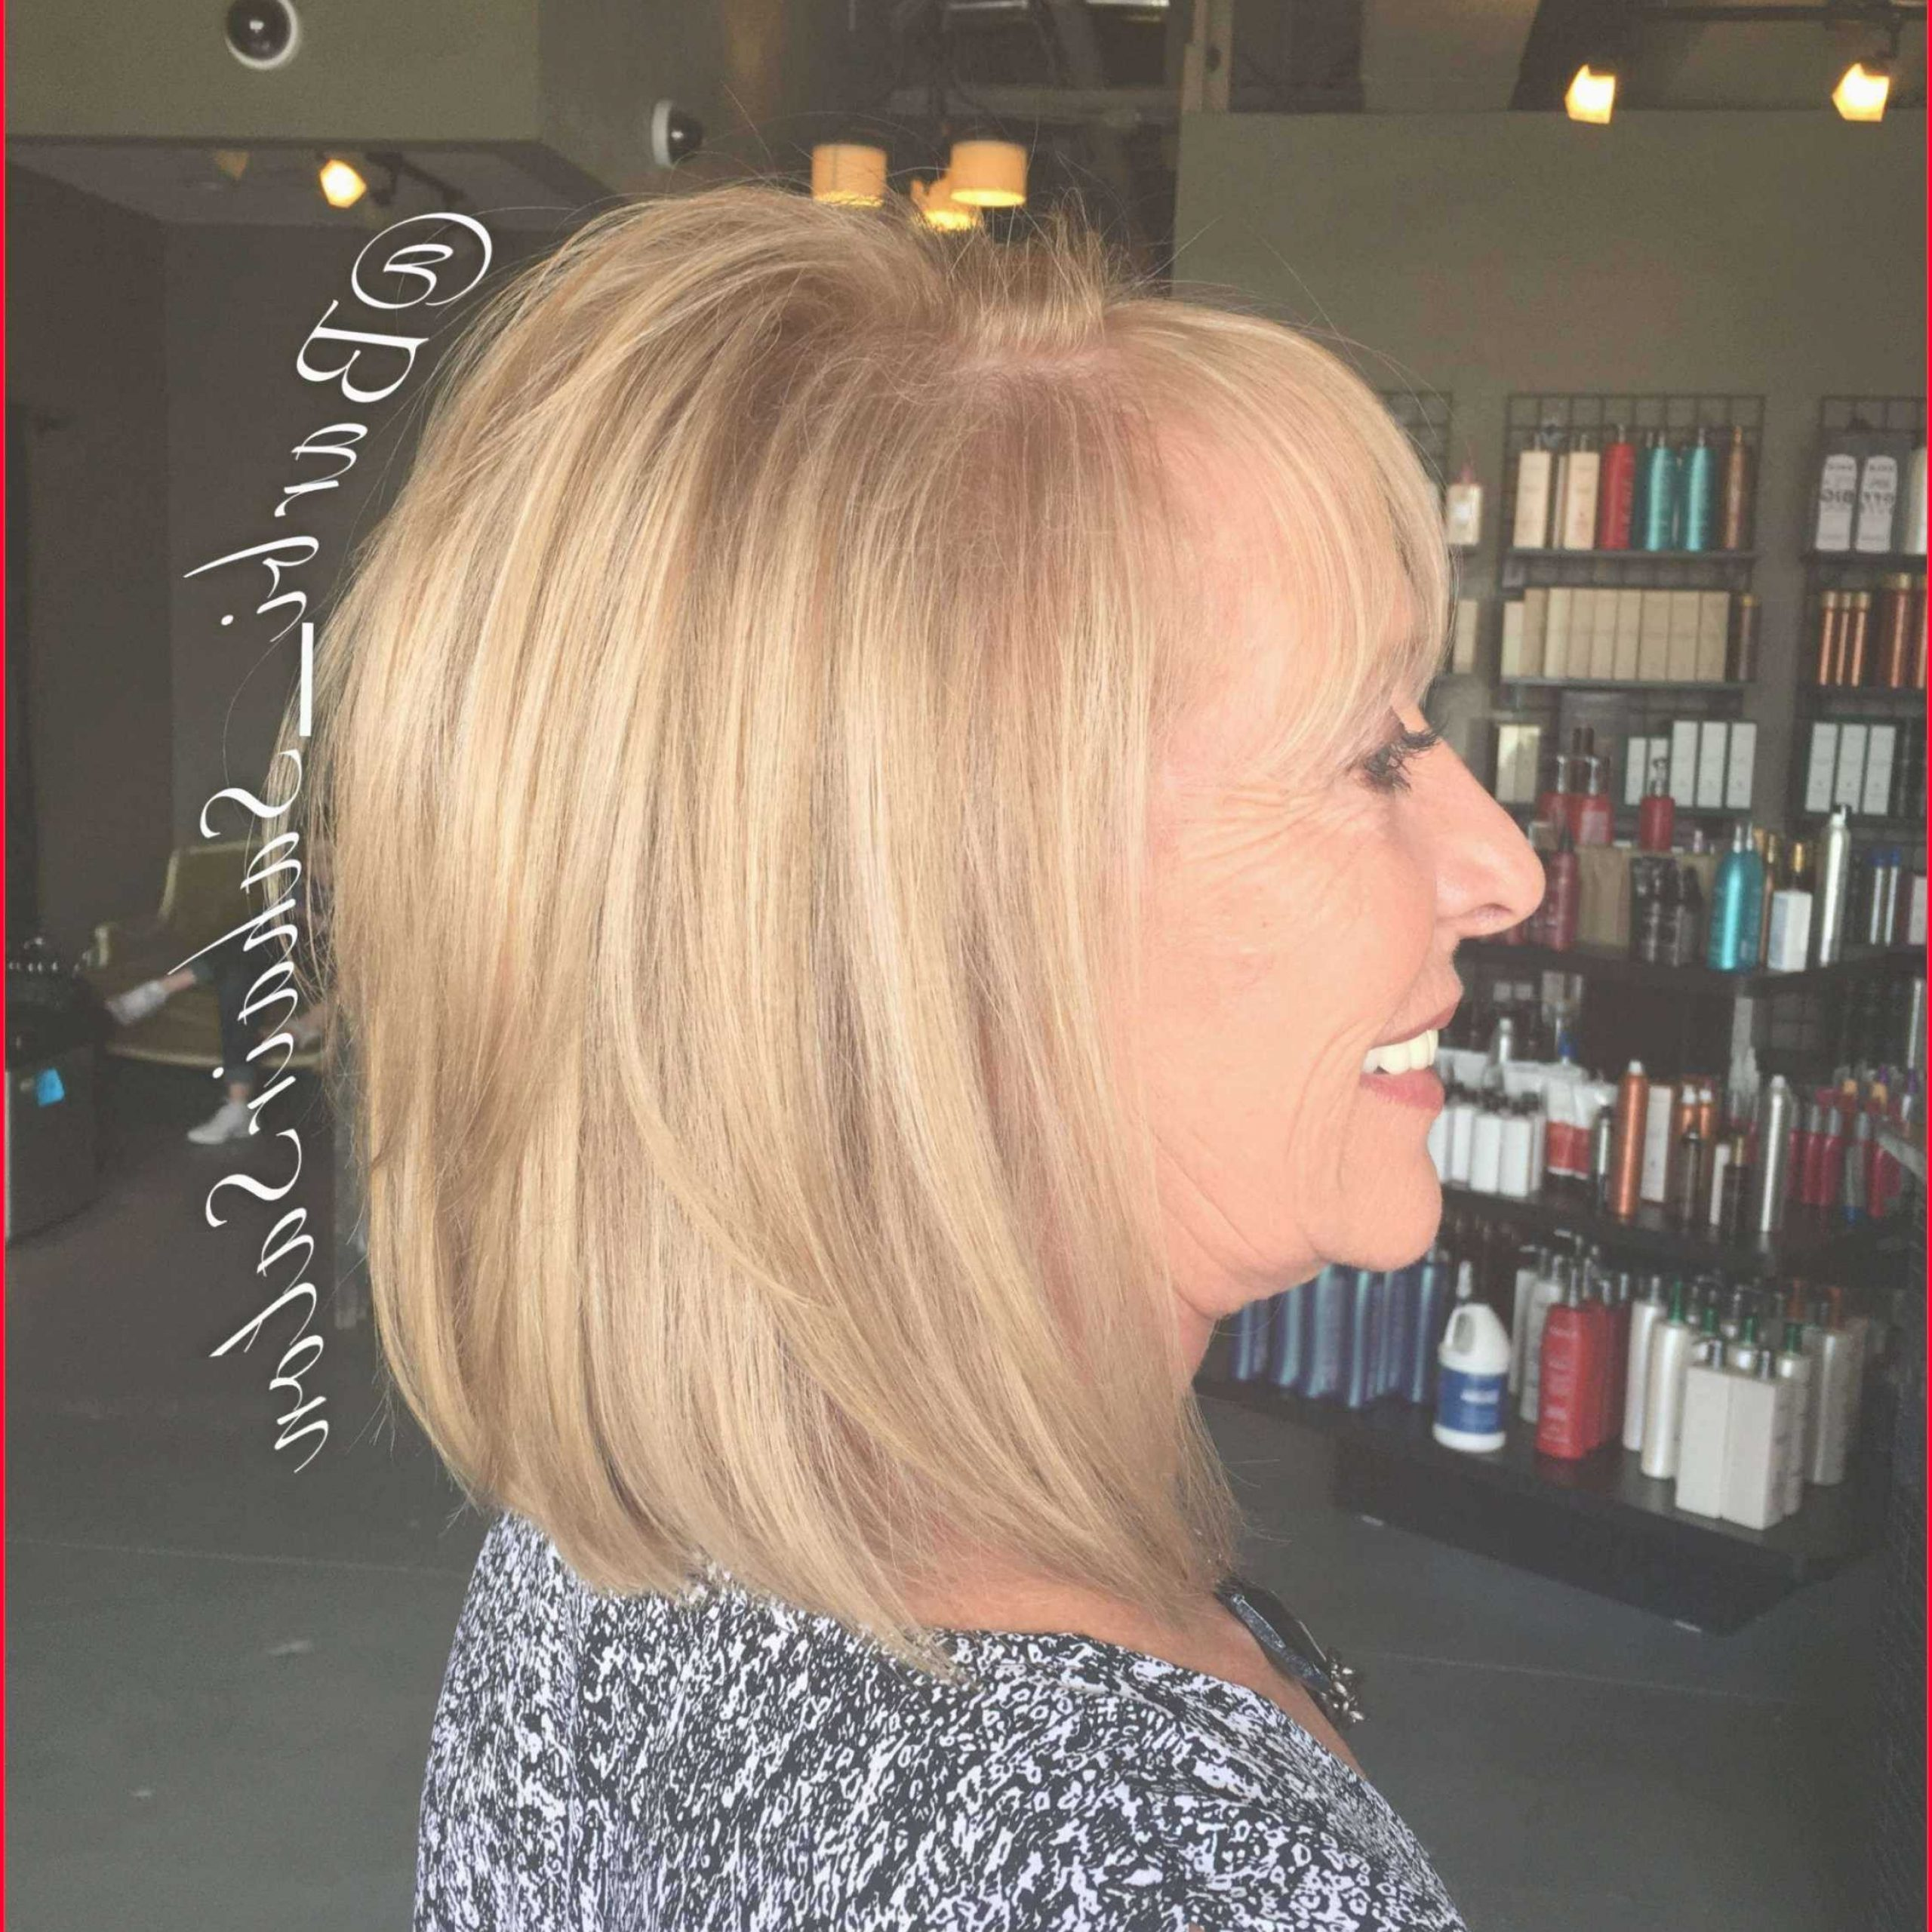 New Short Hairstyles Round Faces Photos Of Short Hairstyles Inside Layered Short Hairstyles For Round Faces (View 13 of 20)